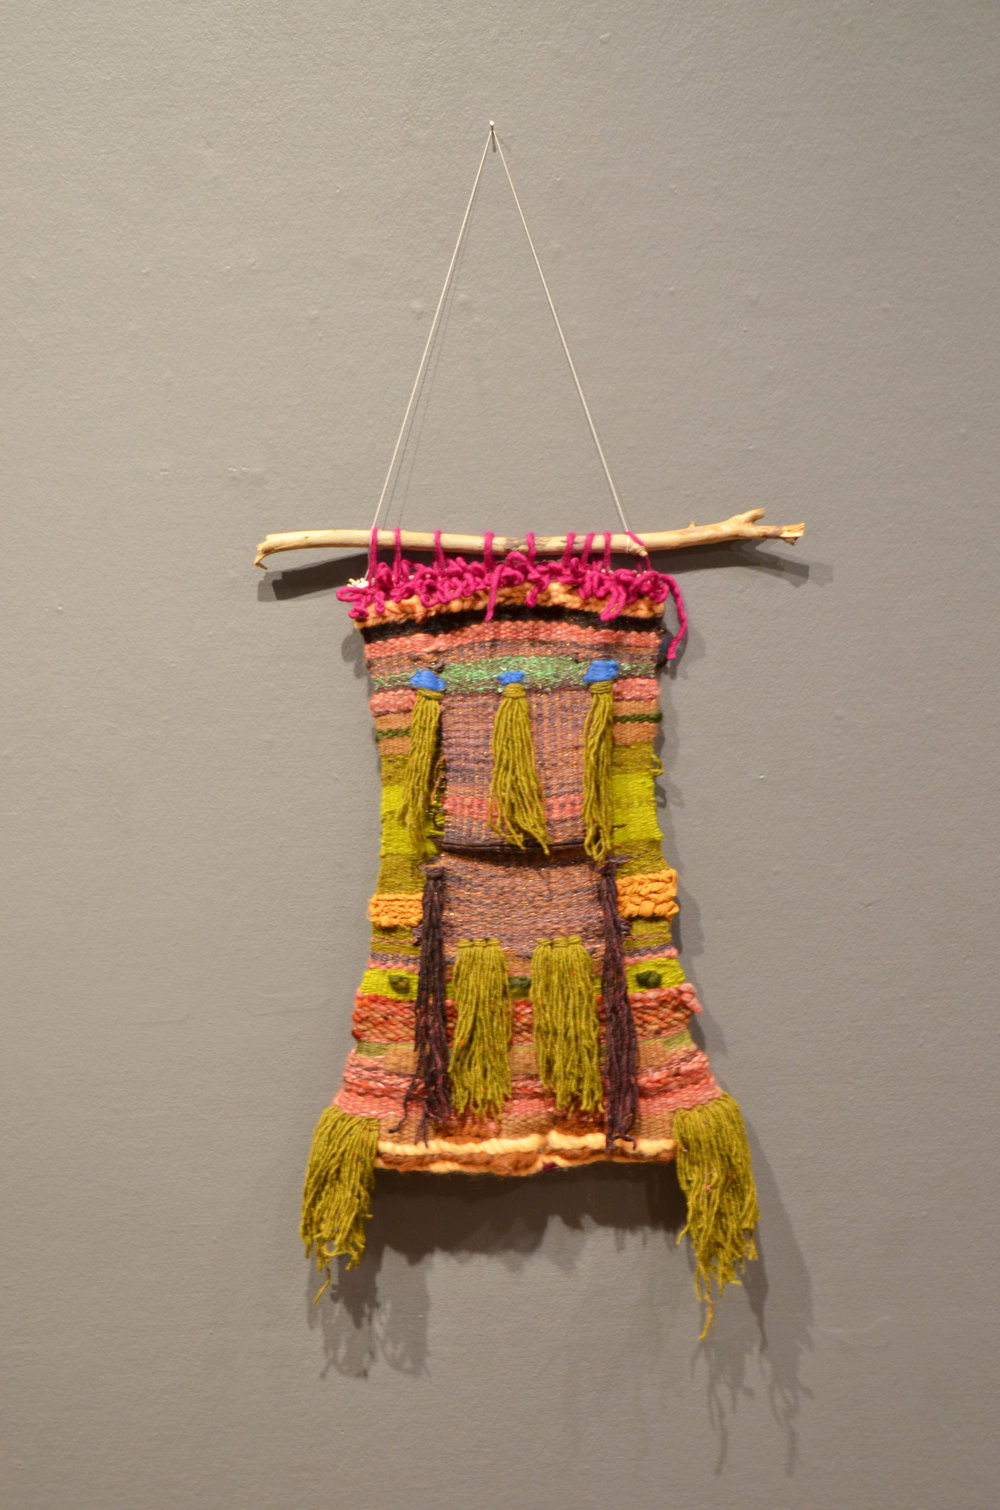 Self-Portrait #2 (as ancestor) wood, wool, cotton. 2016.  Image Description: Woven wool tapestry hanging from fucsia loops on a wood branch against a gray-pink wall. Interwoven horizontal bands of pink, green, purple, gold, brown with blue and peach accents. Green and burgundy tassels hang from center and bottom.